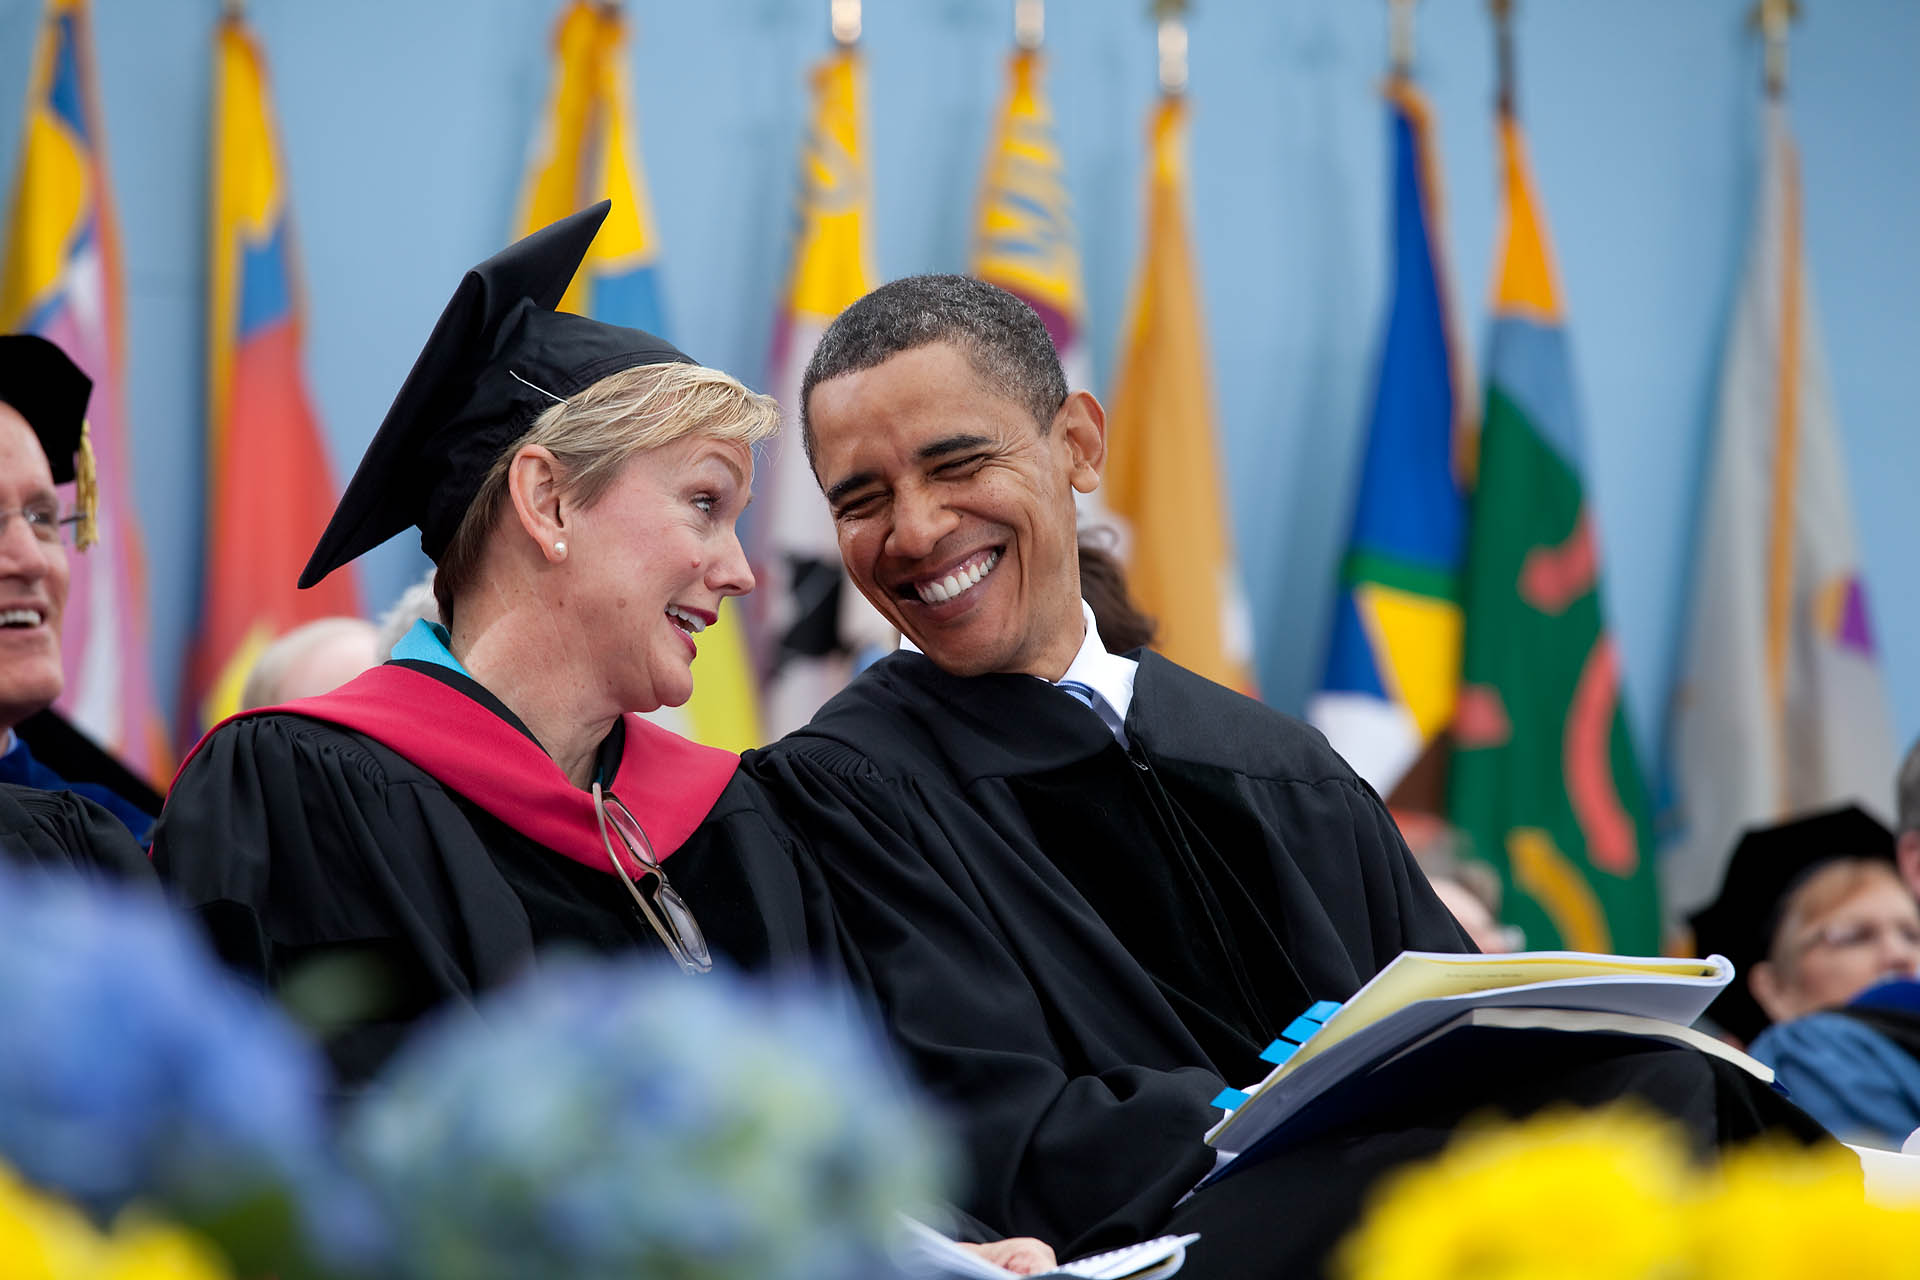 President Obama and Michigan Governer Granholm